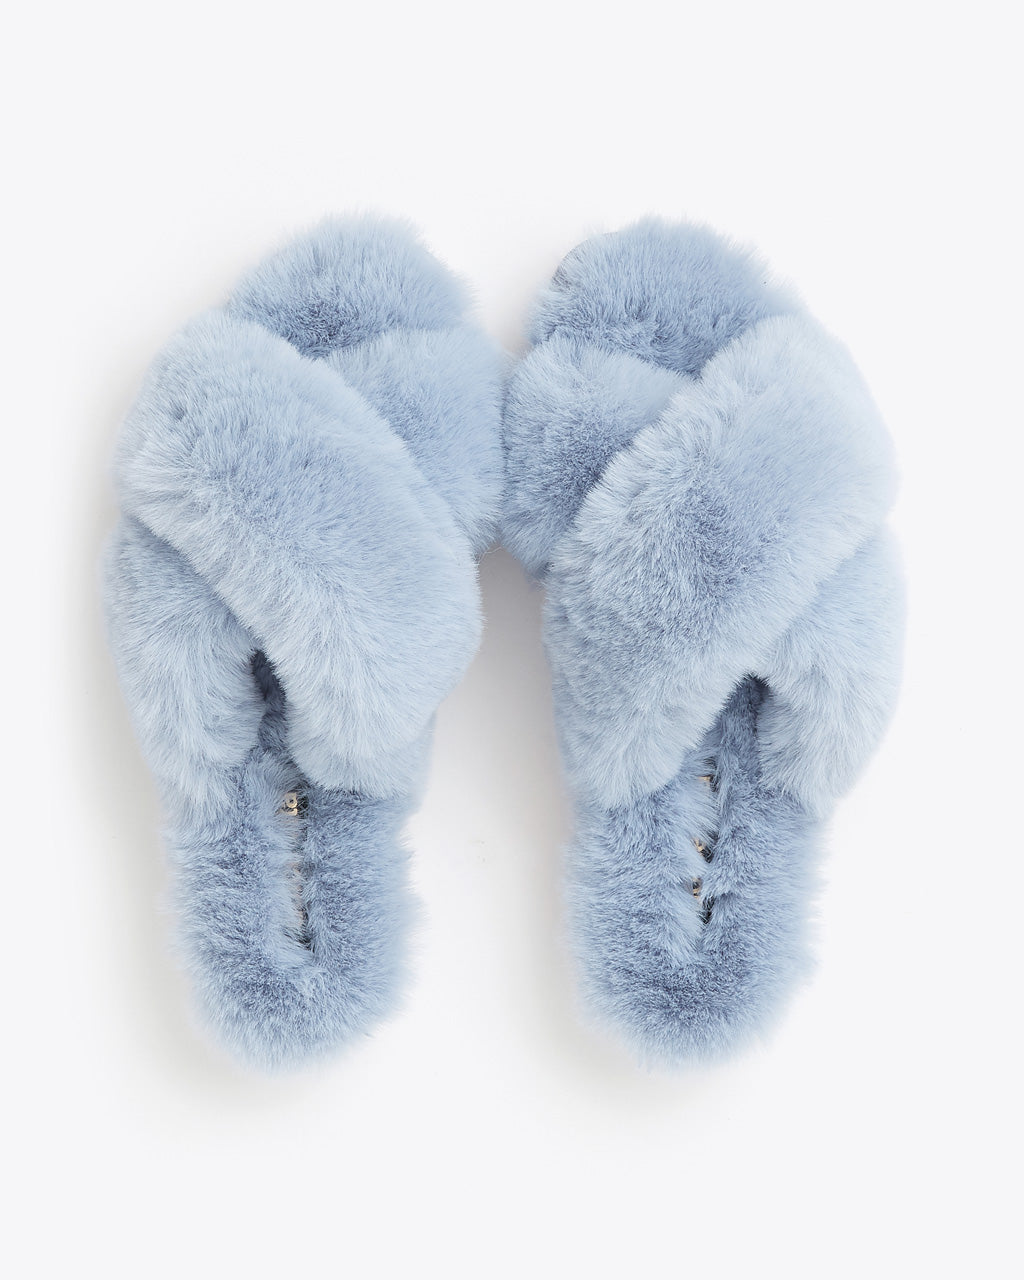 flat lay of blue faux fur slippers